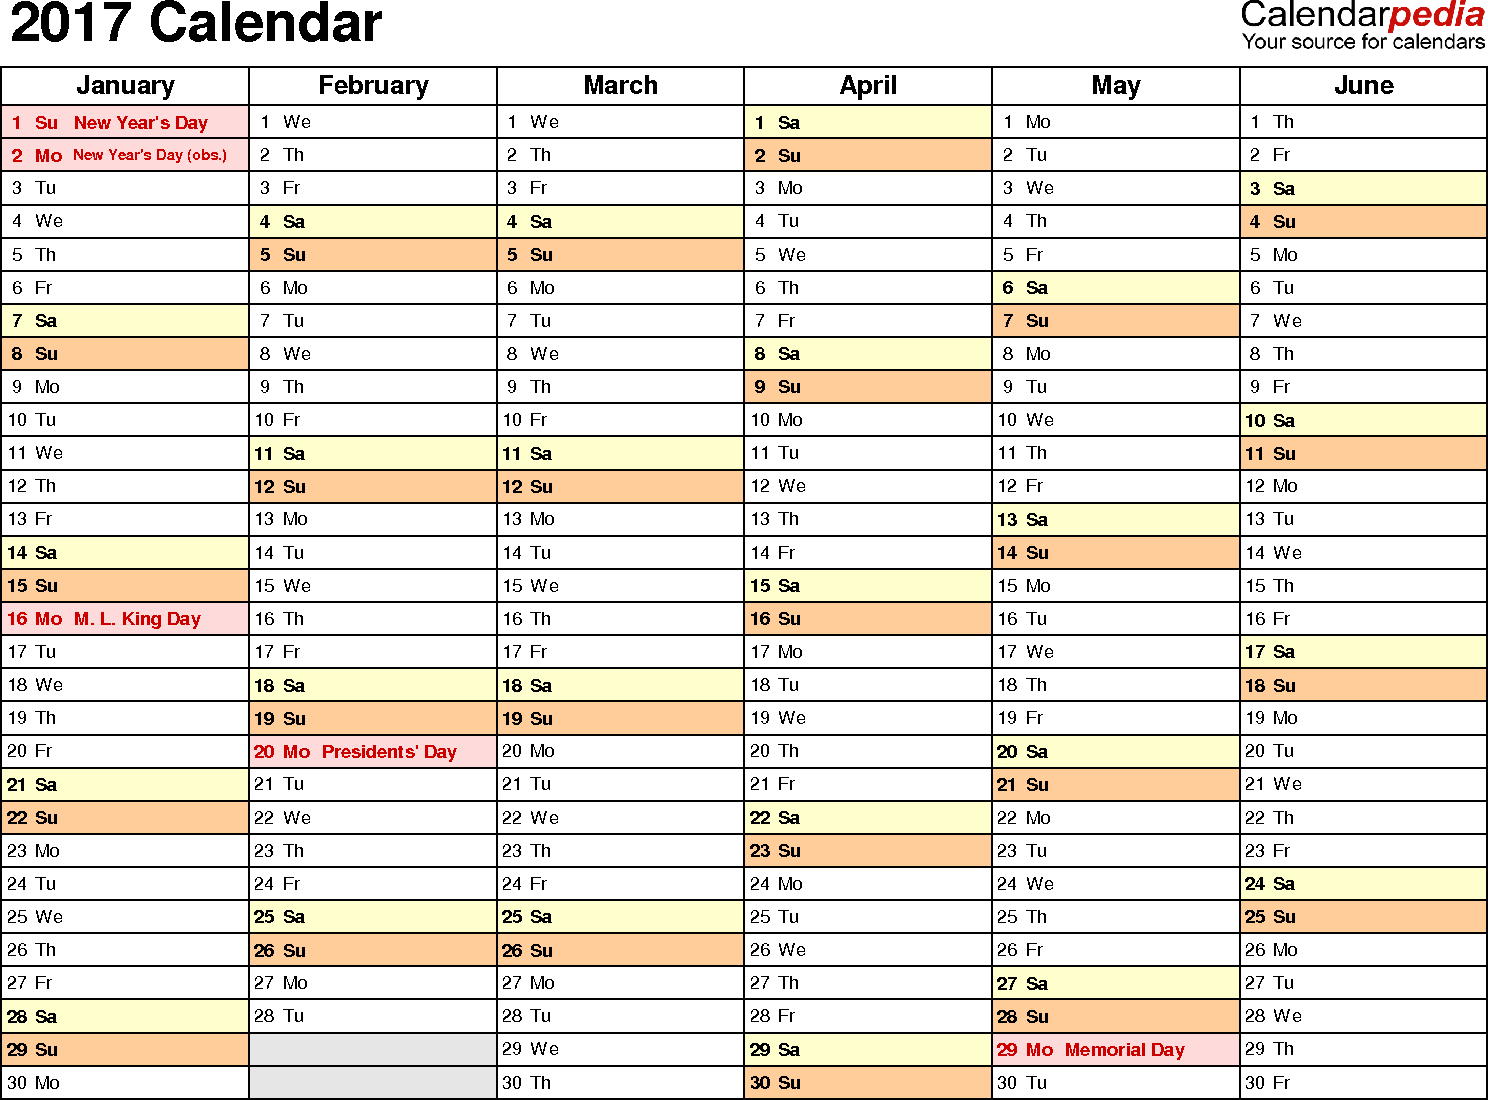 Ediblewildsus  Ravishing  Calendar  Download  Free Printable Excel Templates Xls With Goodlooking Template   Calendar For Excel Months Horizontally  Pages Landscape Orientation With Beauteous Learn Excel For Free Also Org Chart Excel In Addition Excel Formulas Multiply And How To Select A Range In Excel As Well As Separate Columns In Excel Additionally Moving Average In Excel From Calendarpediacom With Ediblewildsus  Goodlooking  Calendar  Download  Free Printable Excel Templates Xls With Beauteous Template   Calendar For Excel Months Horizontally  Pages Landscape Orientation And Ravishing Learn Excel For Free Also Org Chart Excel In Addition Excel Formulas Multiply From Calendarpediacom